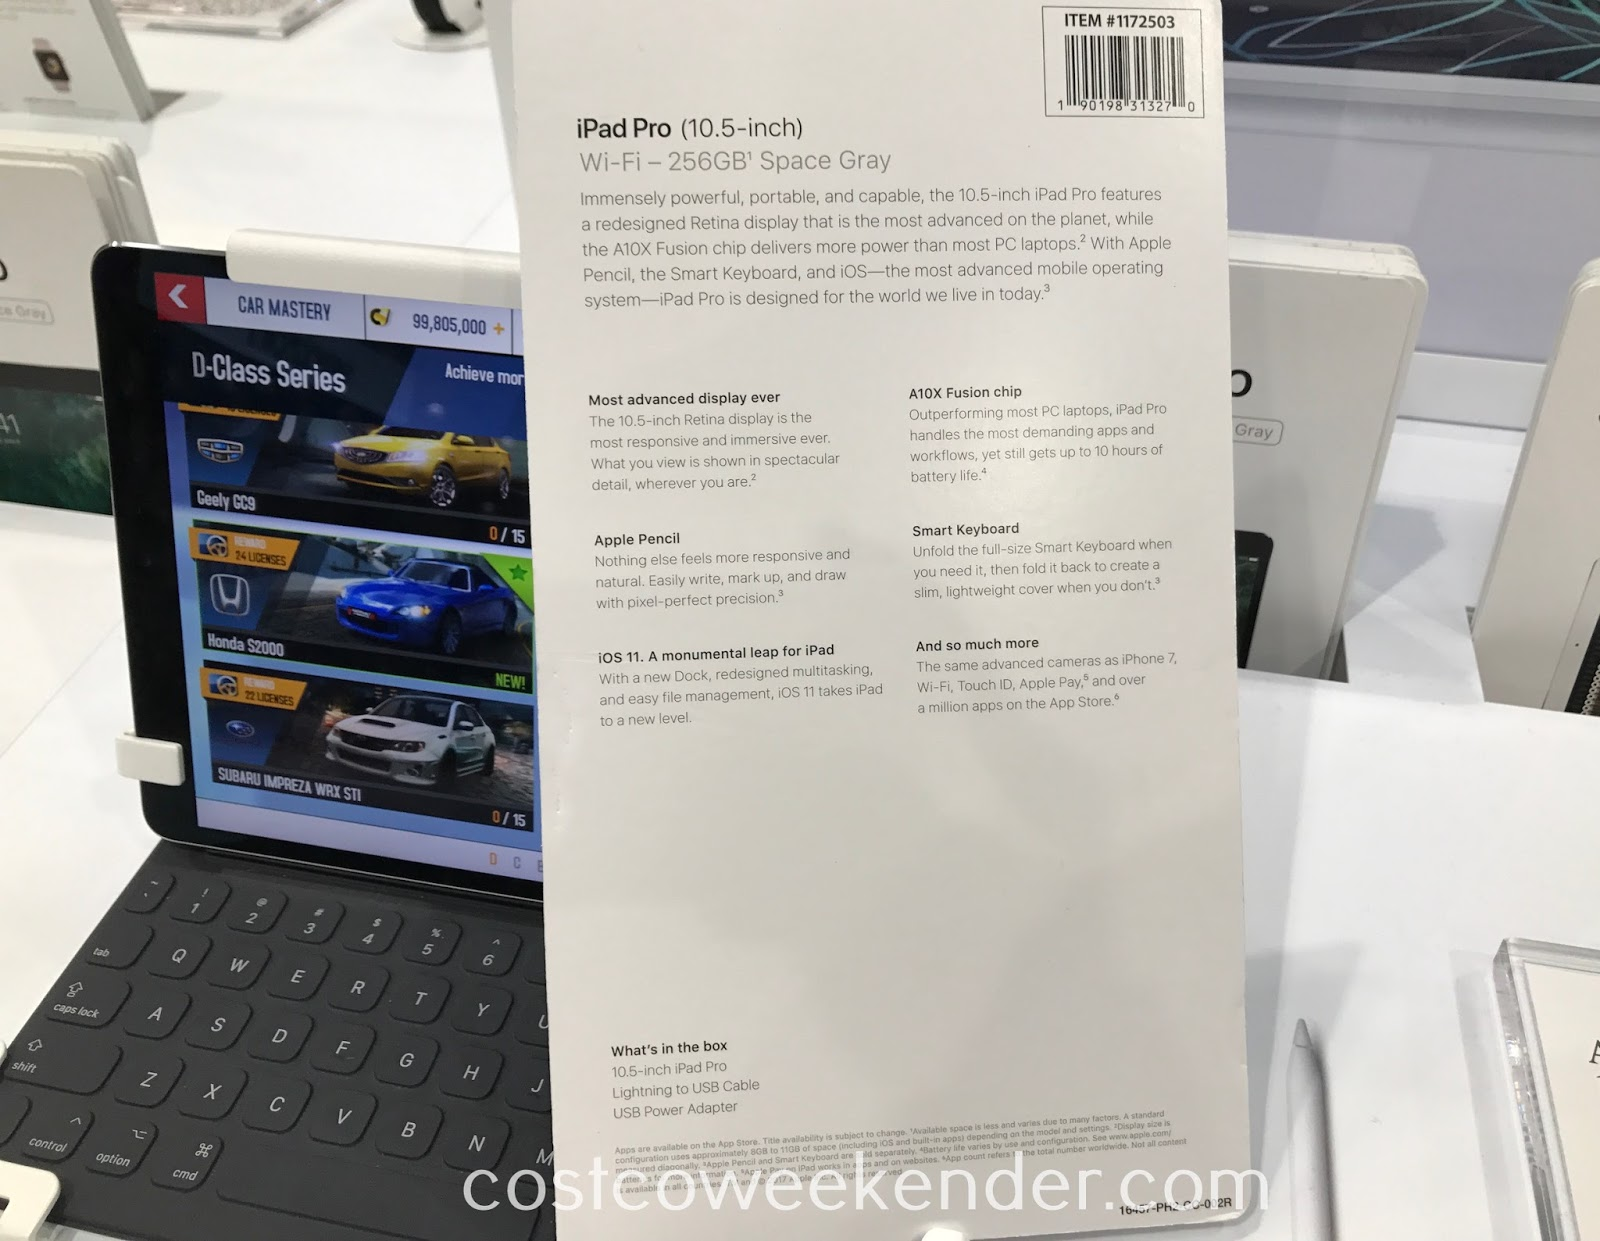 Costco 1172503 - Apple iPad Pro: whether you're working or traveling, you'll find it to be functional yet stylish